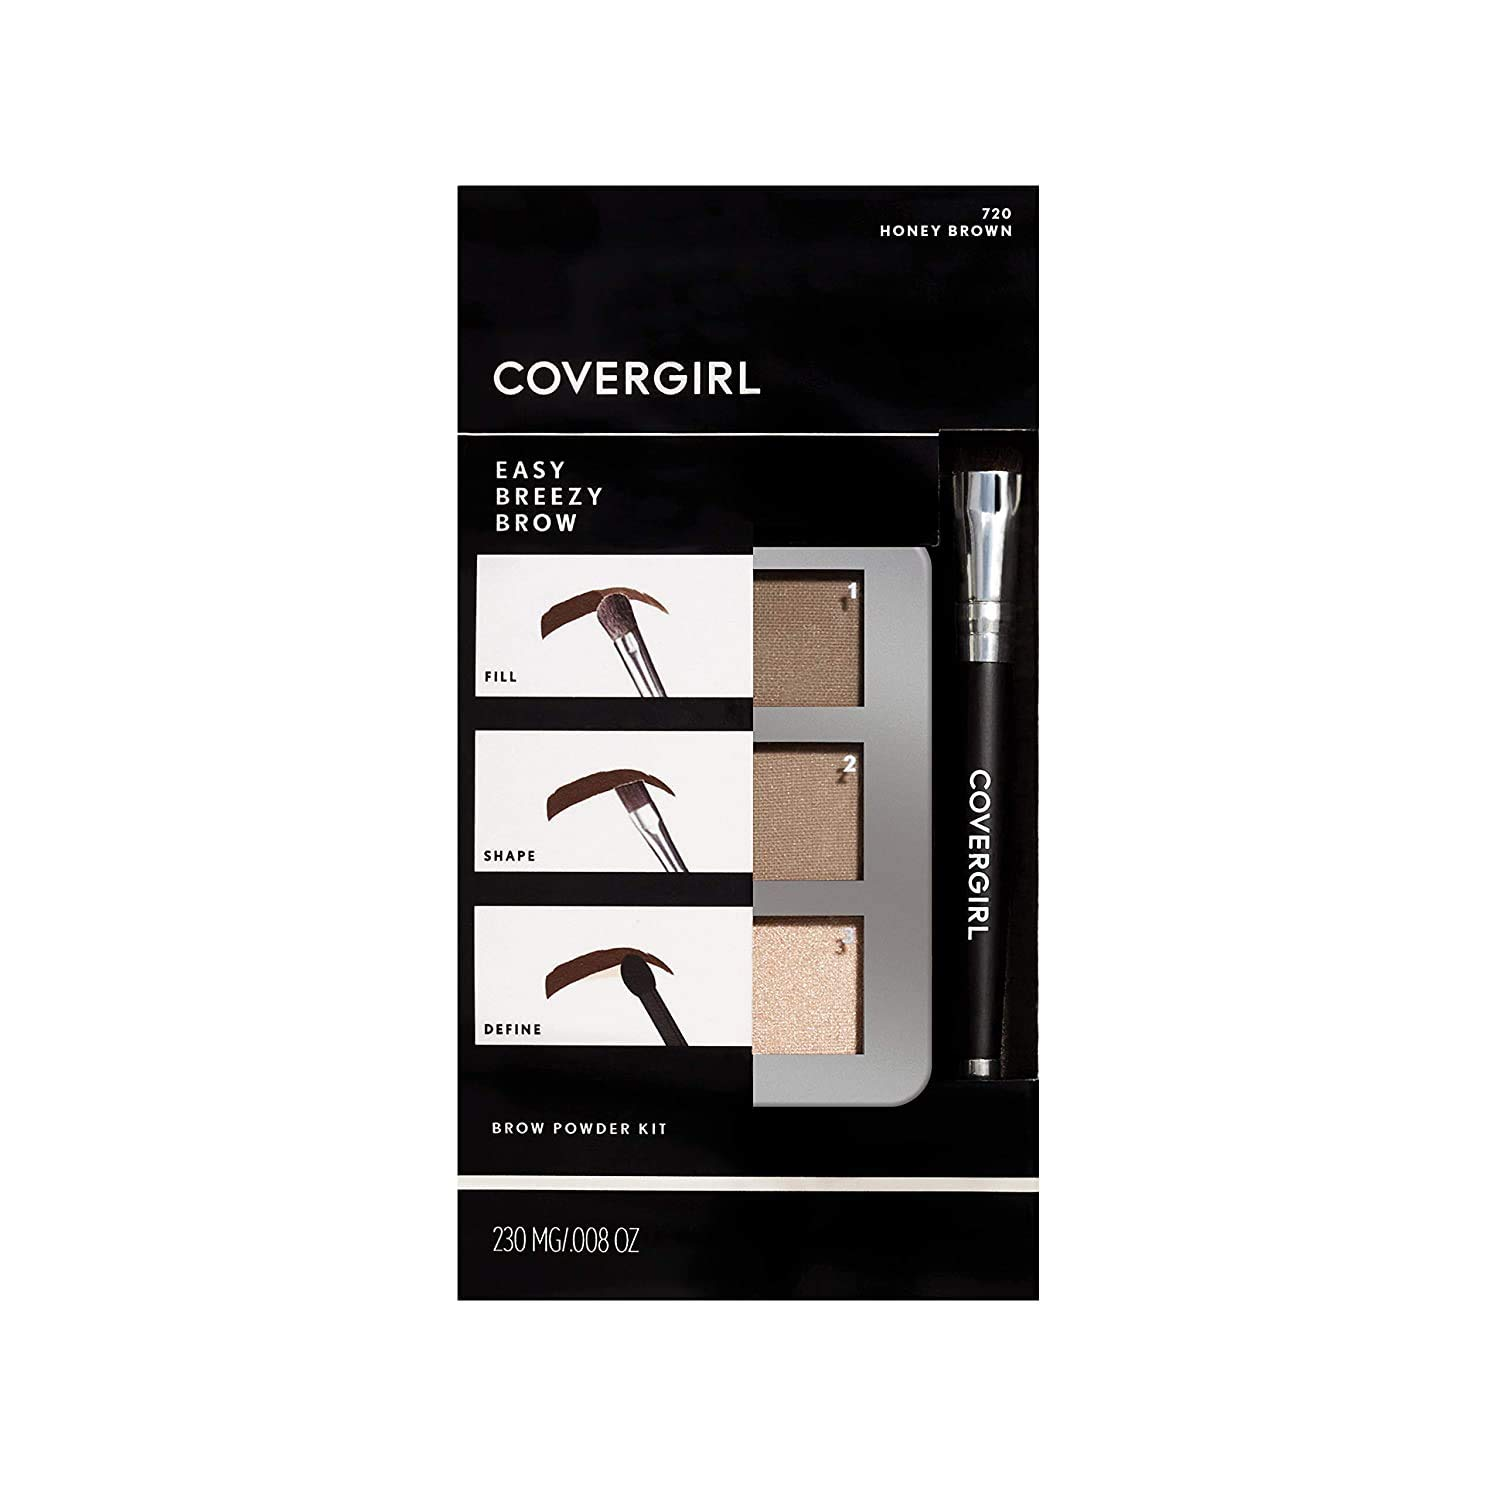 COVERGIRL Easy Breezy Dedication Brow Powder Blonde Soft packaging Kit Large-scale sale ma